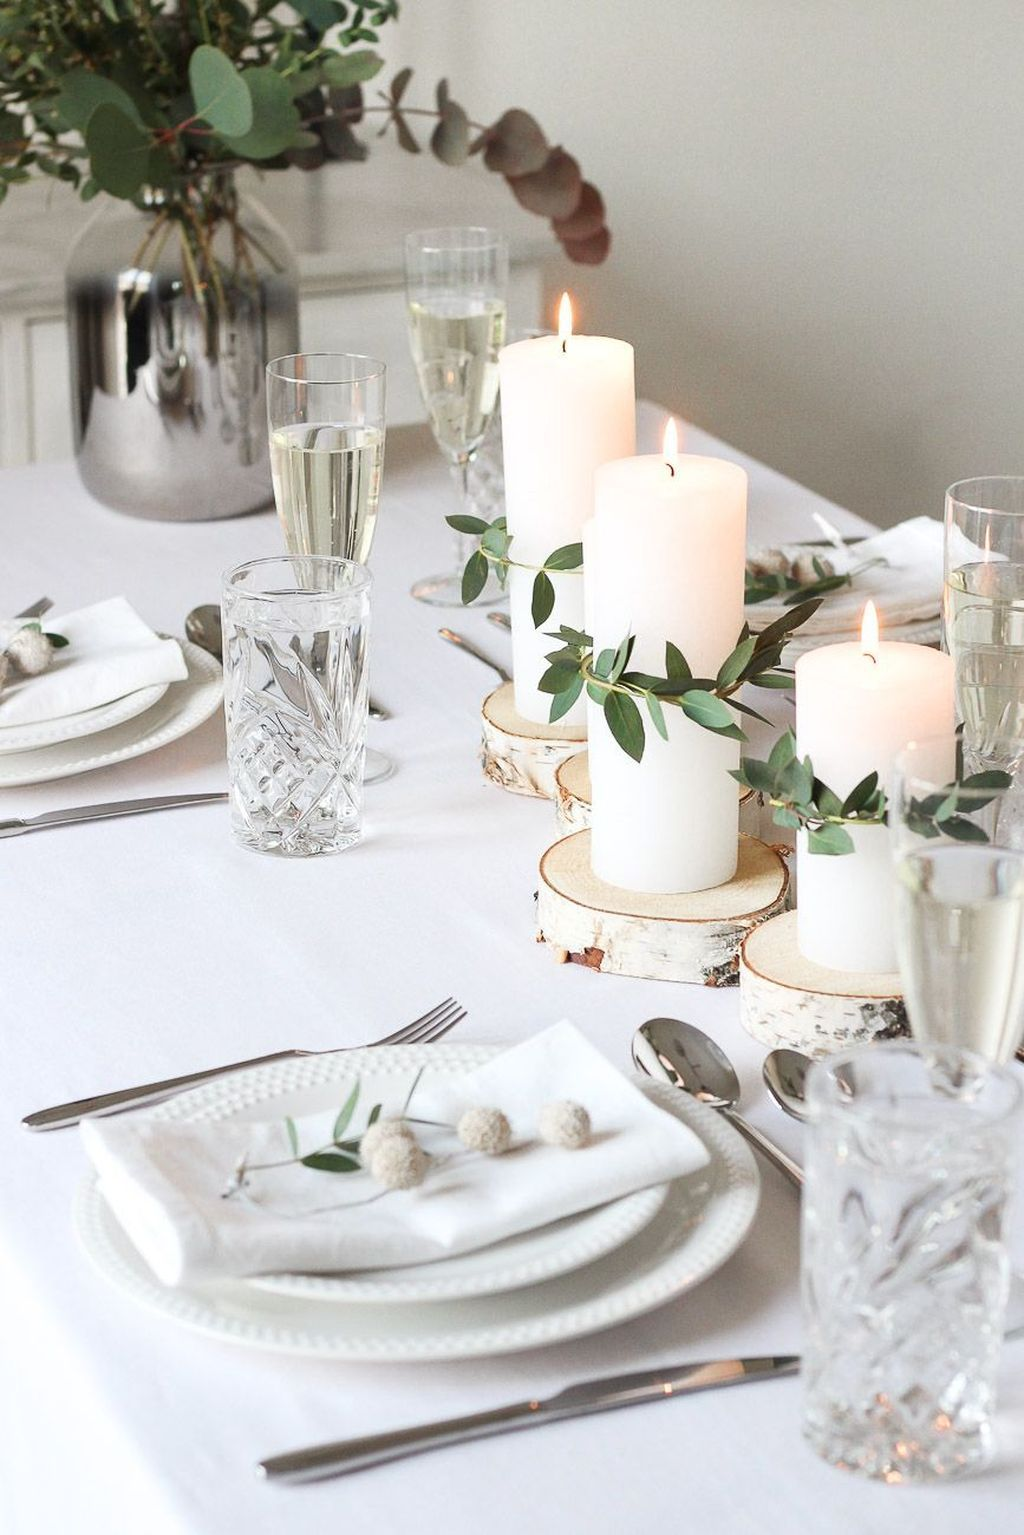 35 Stunning Party Table Decorations Ideas For Your Special Moment #dinnerideas2019